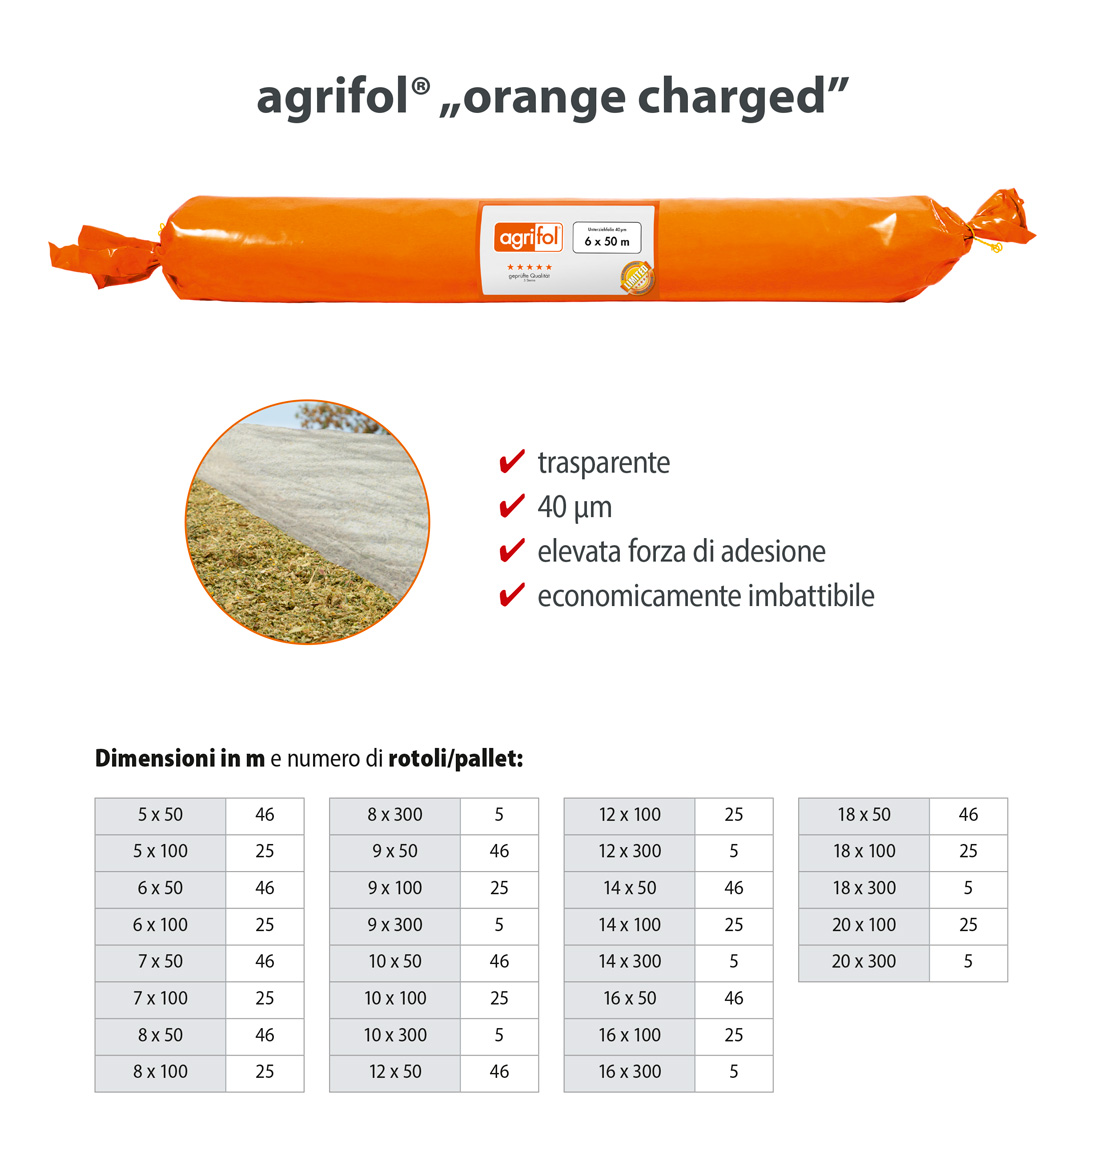 Zill Pellicola effetto vacuum agrifol orange charged